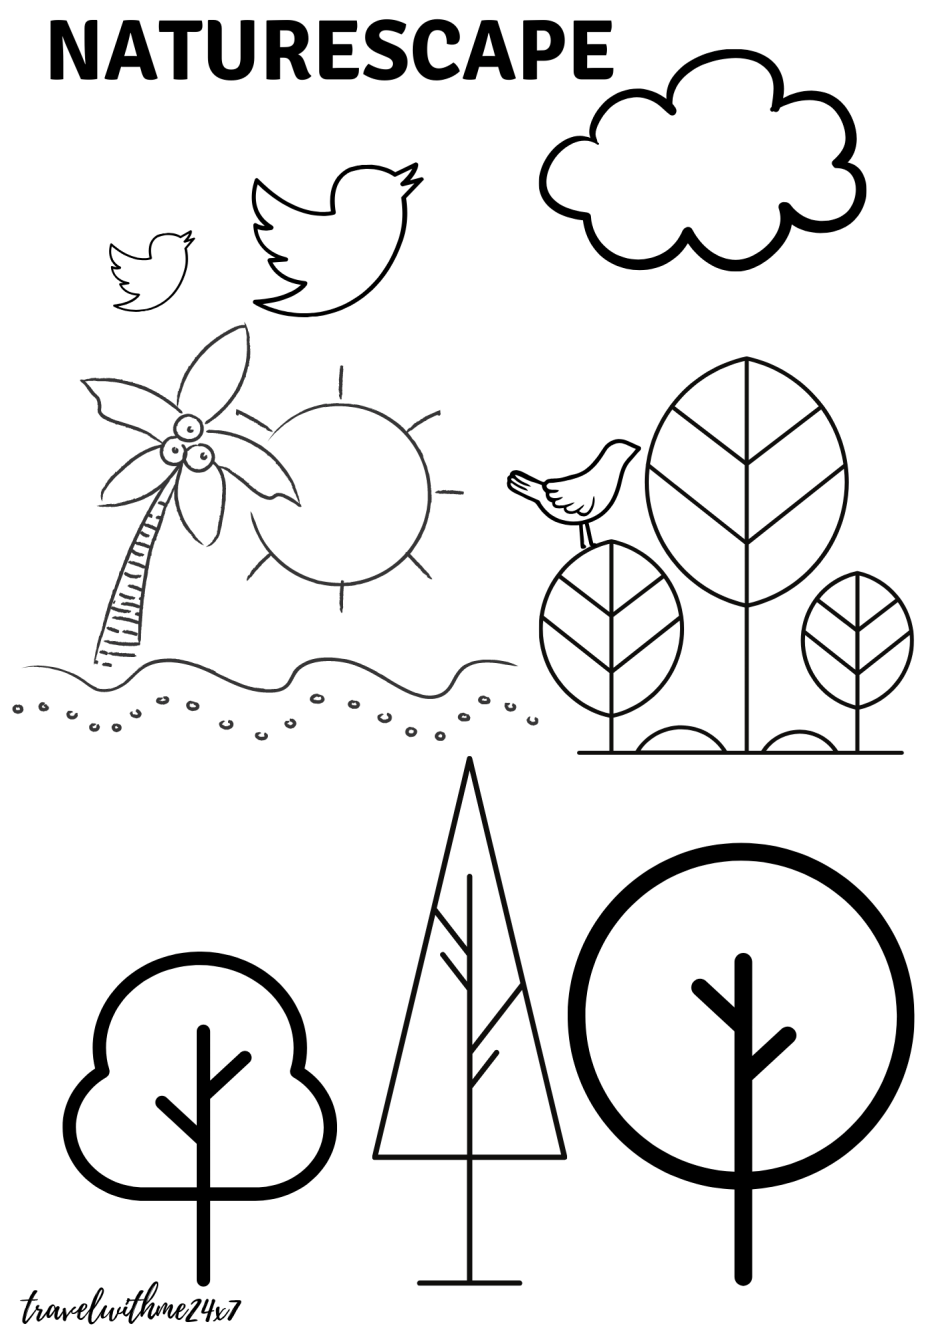 Free Coloring Pages - Color Your Travel Memories